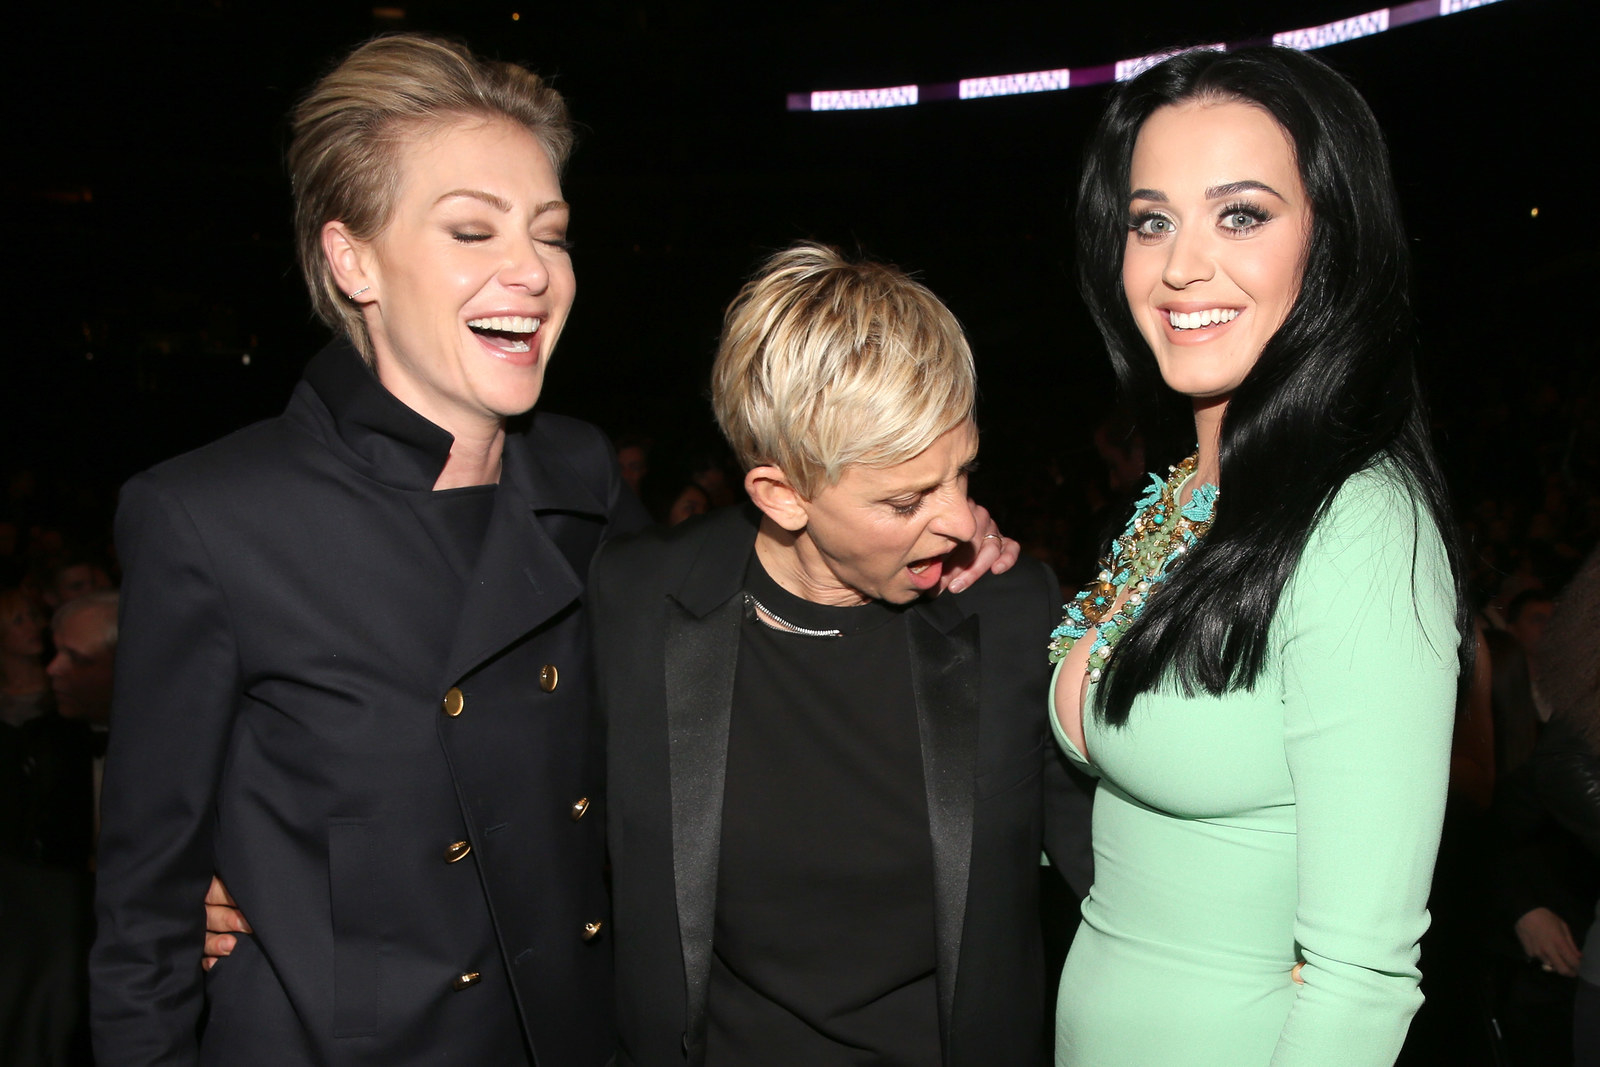 Portia de Rossi, DeGeneres, and Katy Perry at the Grammy Awards in 2013.